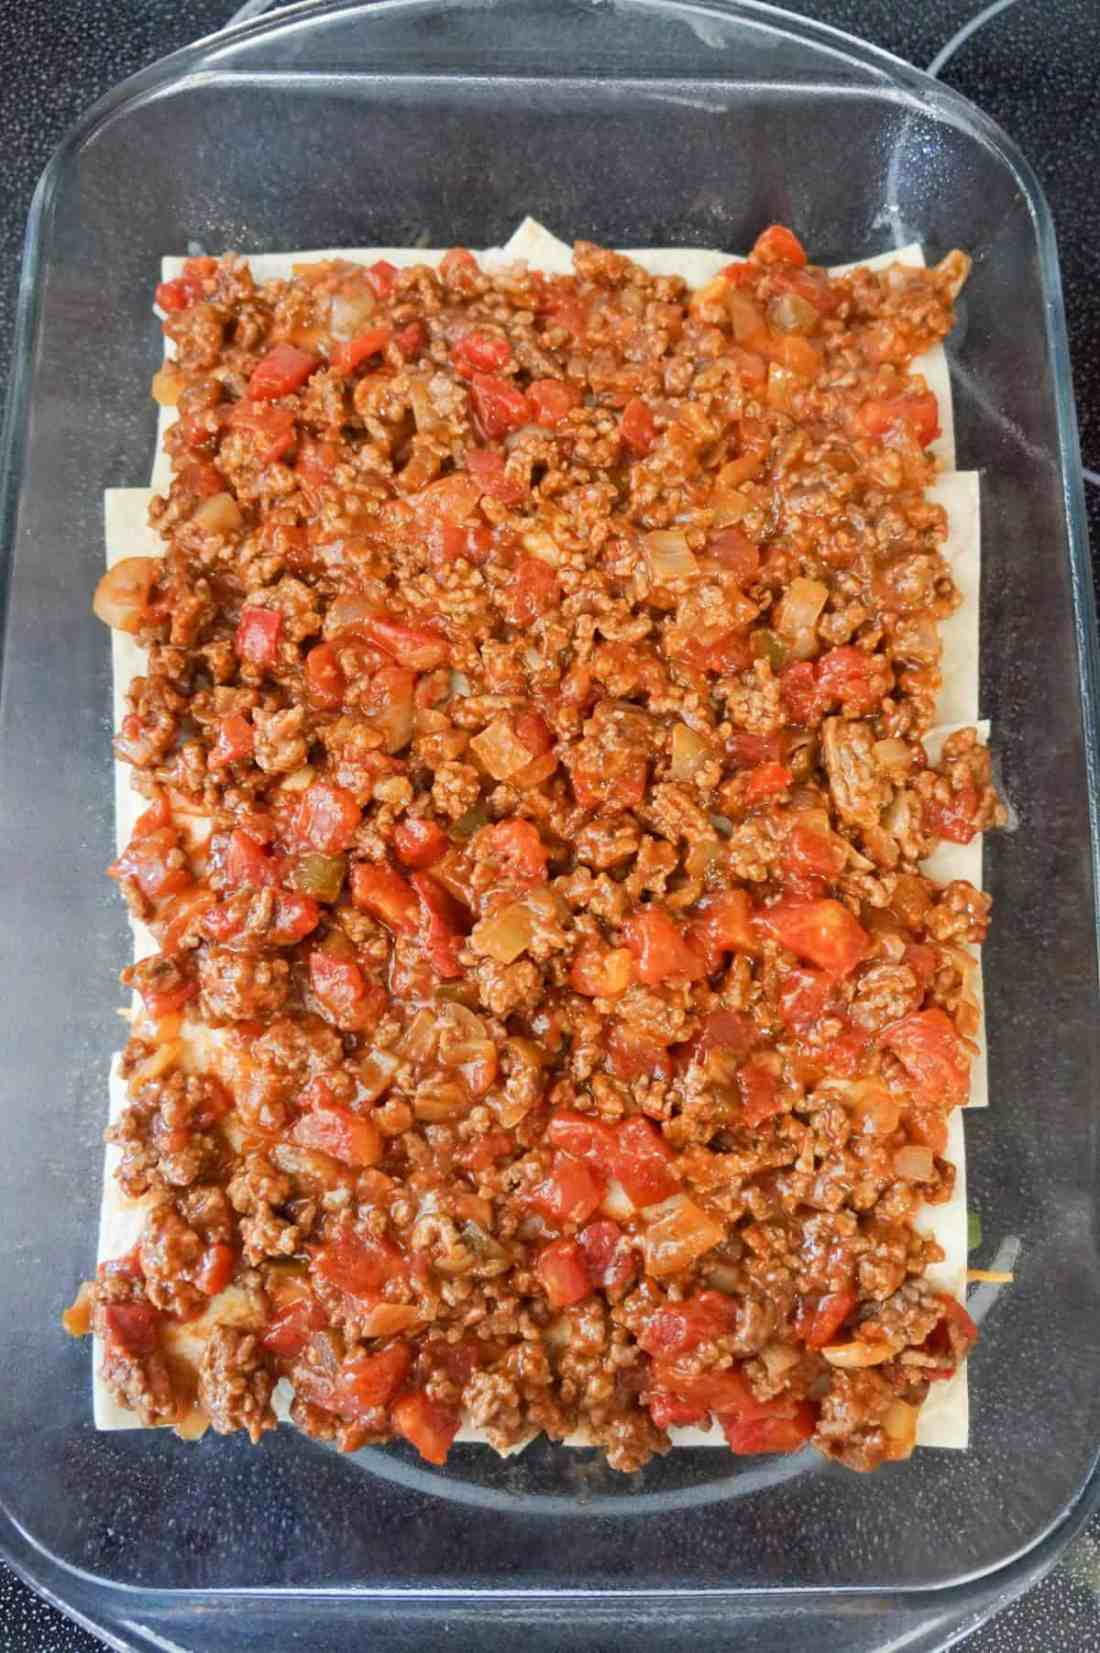 ground beef and salsa mixture on top of flour tortilla pieces in a baking dish